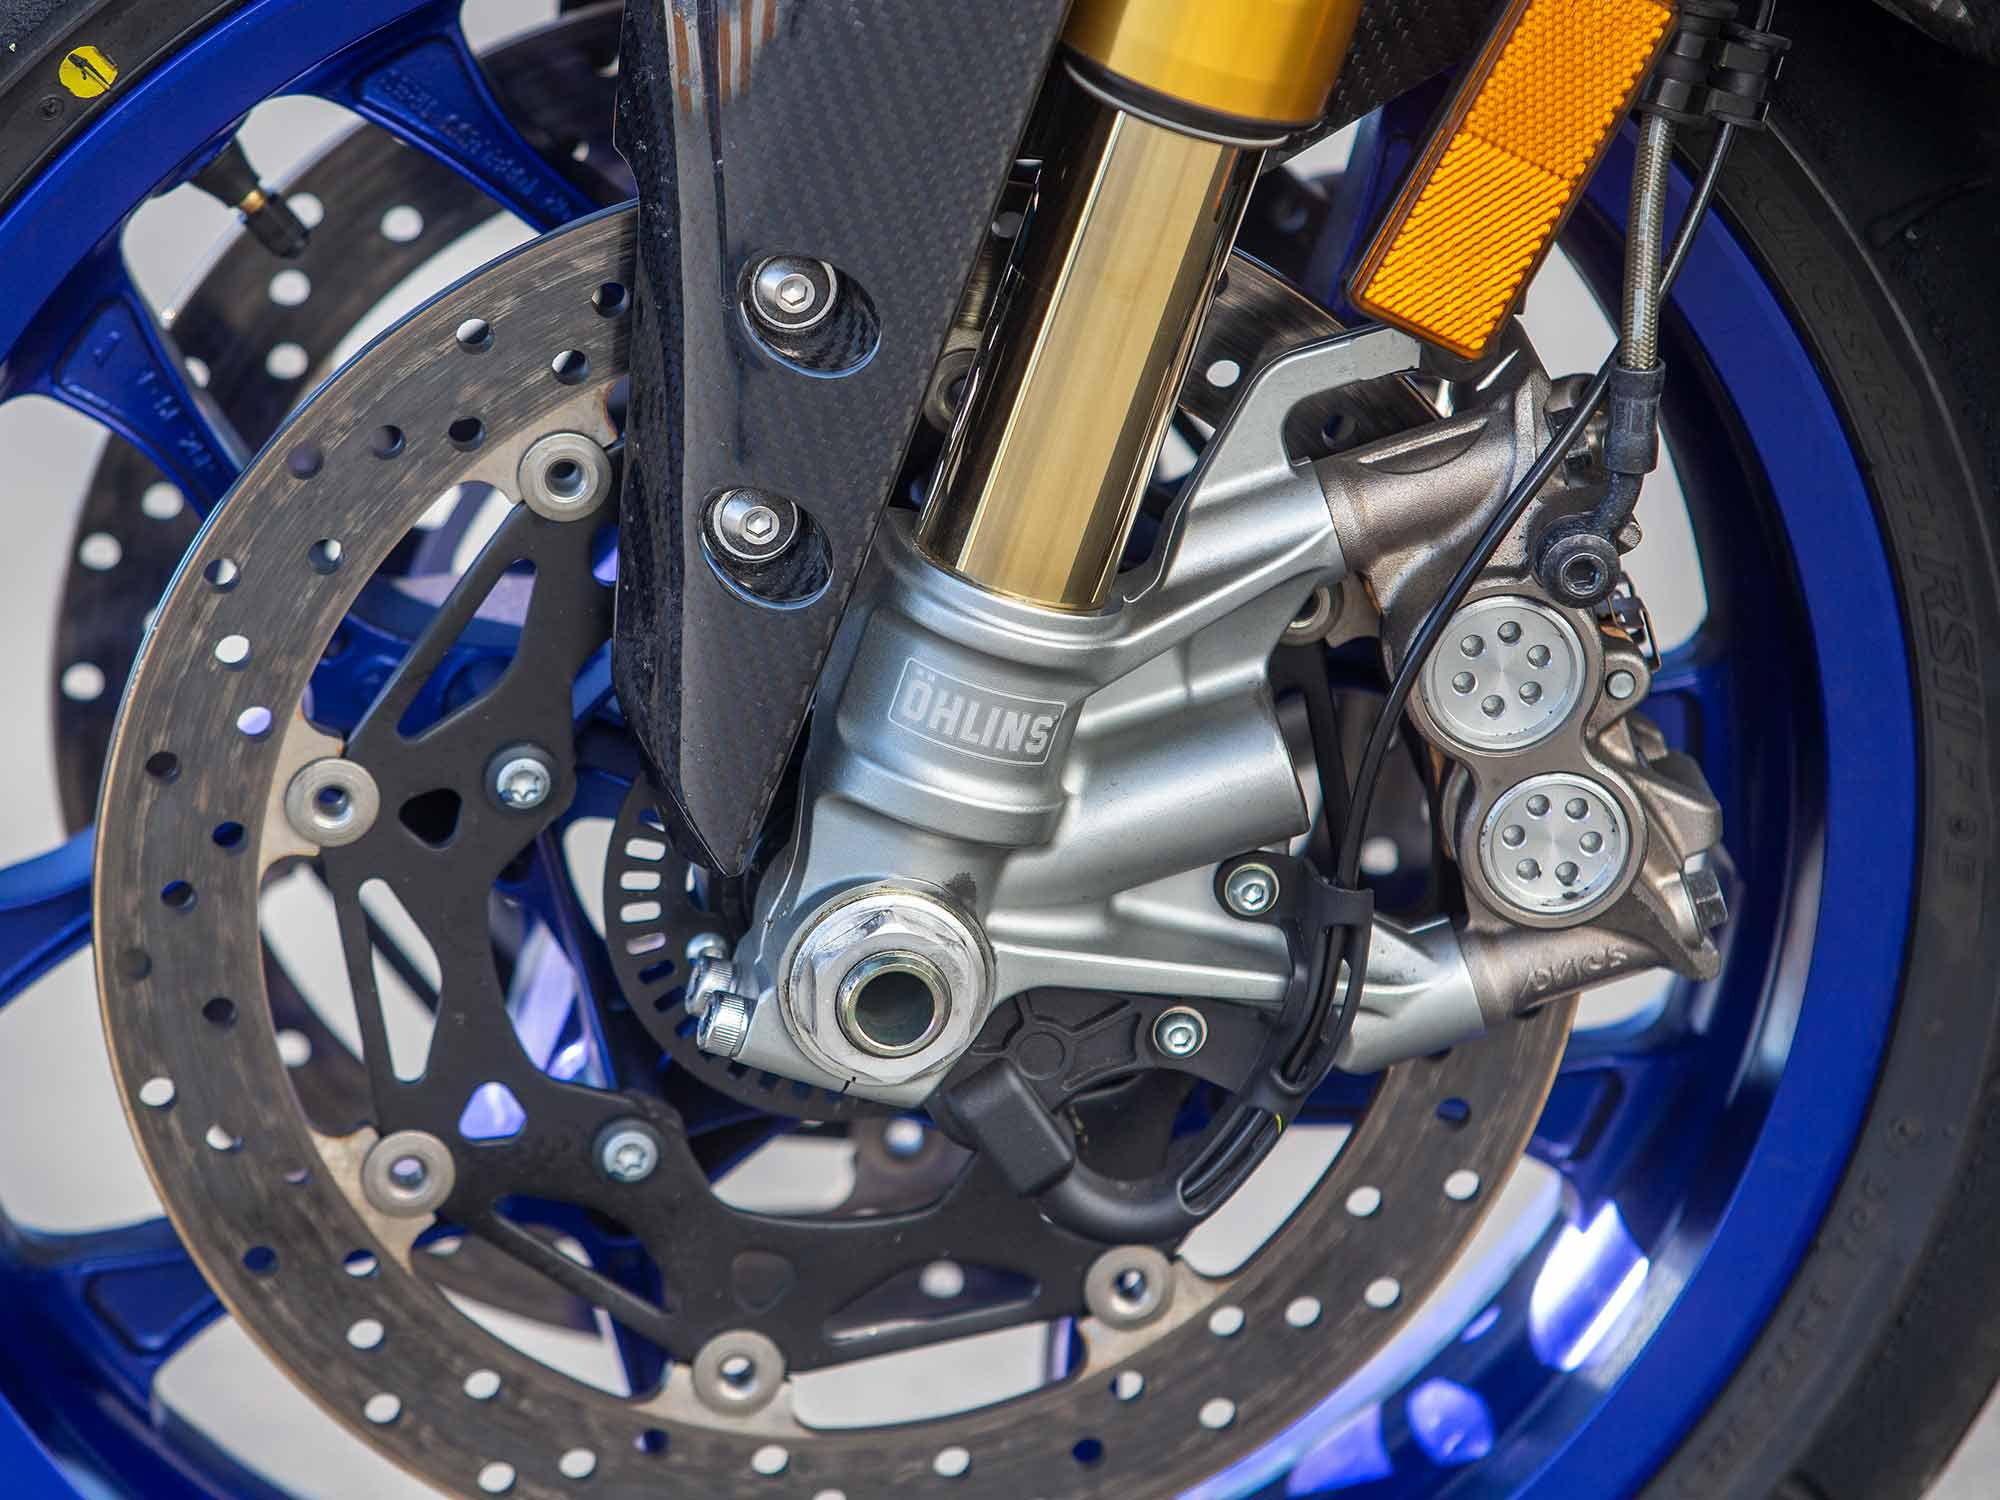 The '21 YZF-R1M employs Ohlins latest and greatest semi-active electronic suspension with a gas-charged fork. The suspension offers versatile performance with a few pushes of a button.